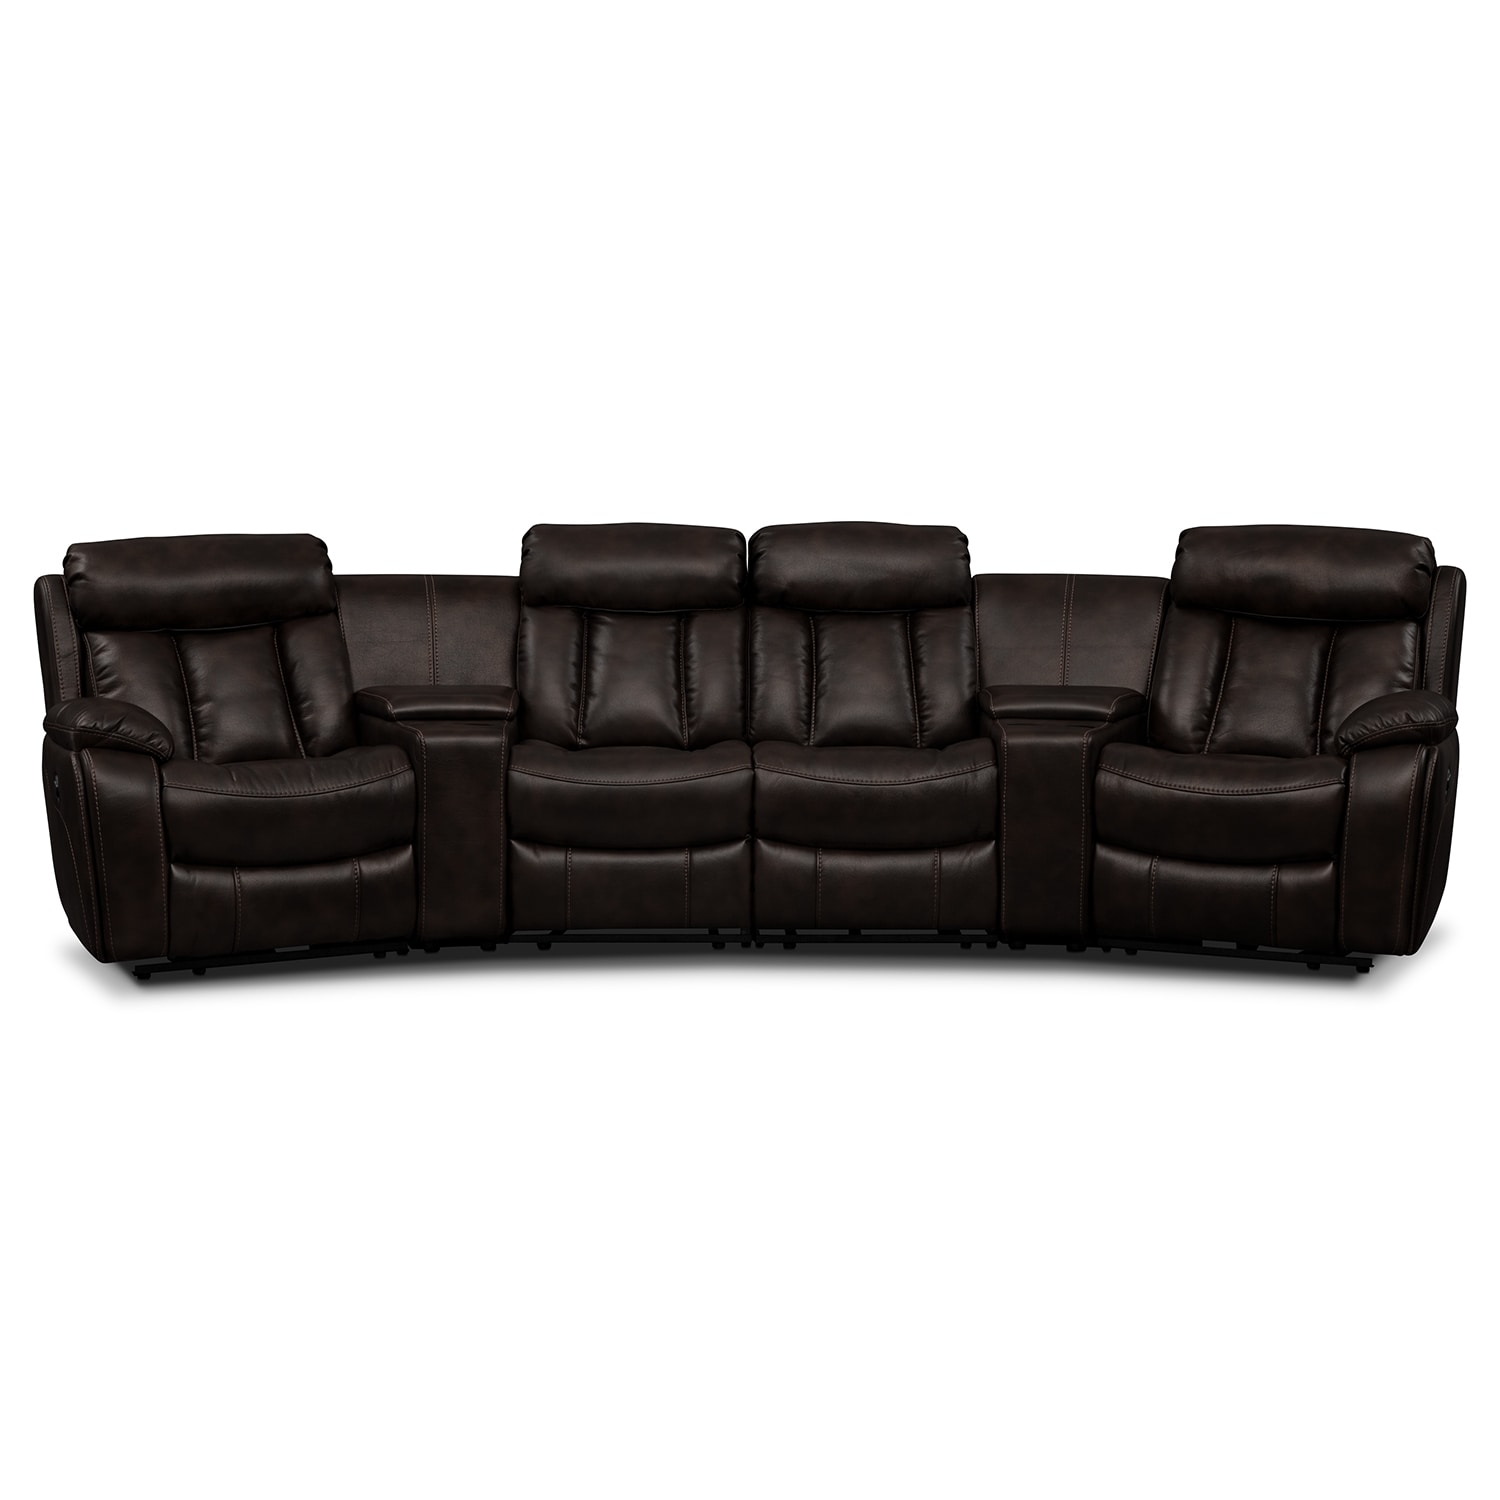 Living Room Furniture - Diablo 6 Pc. Power Reclining Sectional